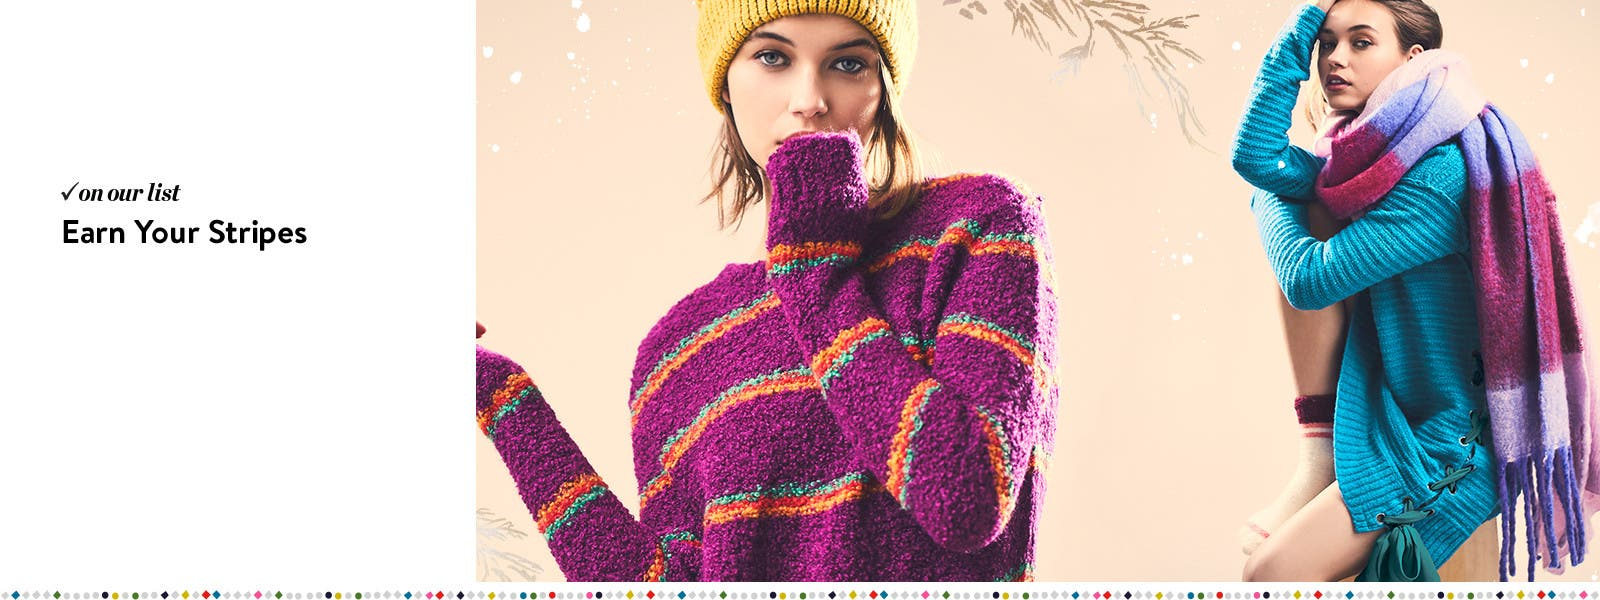 Earn your stripes in Free People sweaters and scarves.